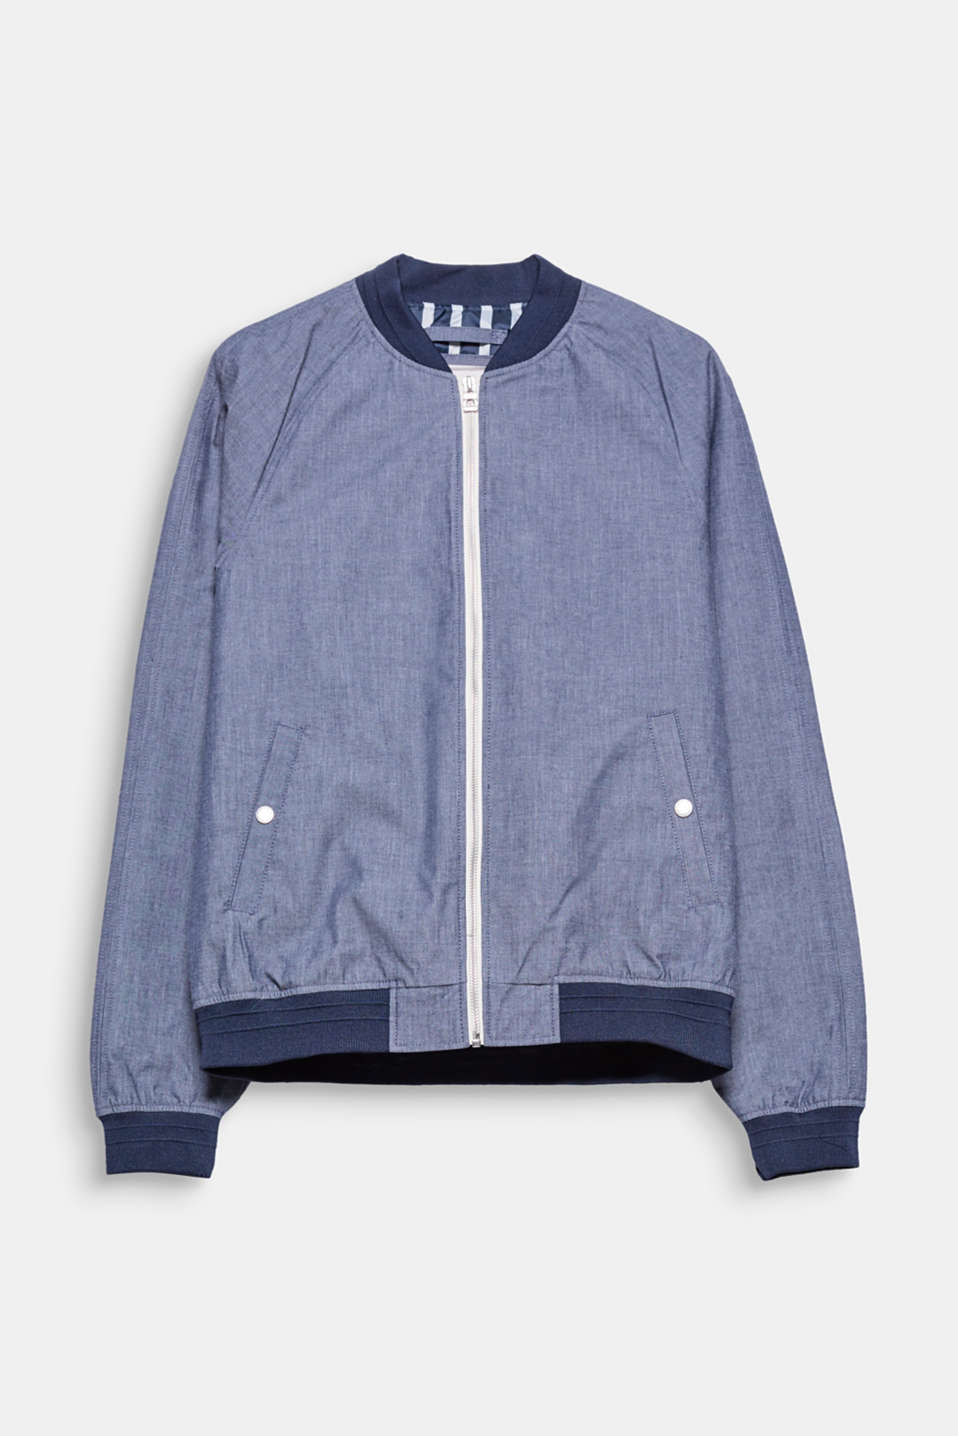 Its sporty look and charismatic chambray texture transform this bomber jacket into a firm fave.